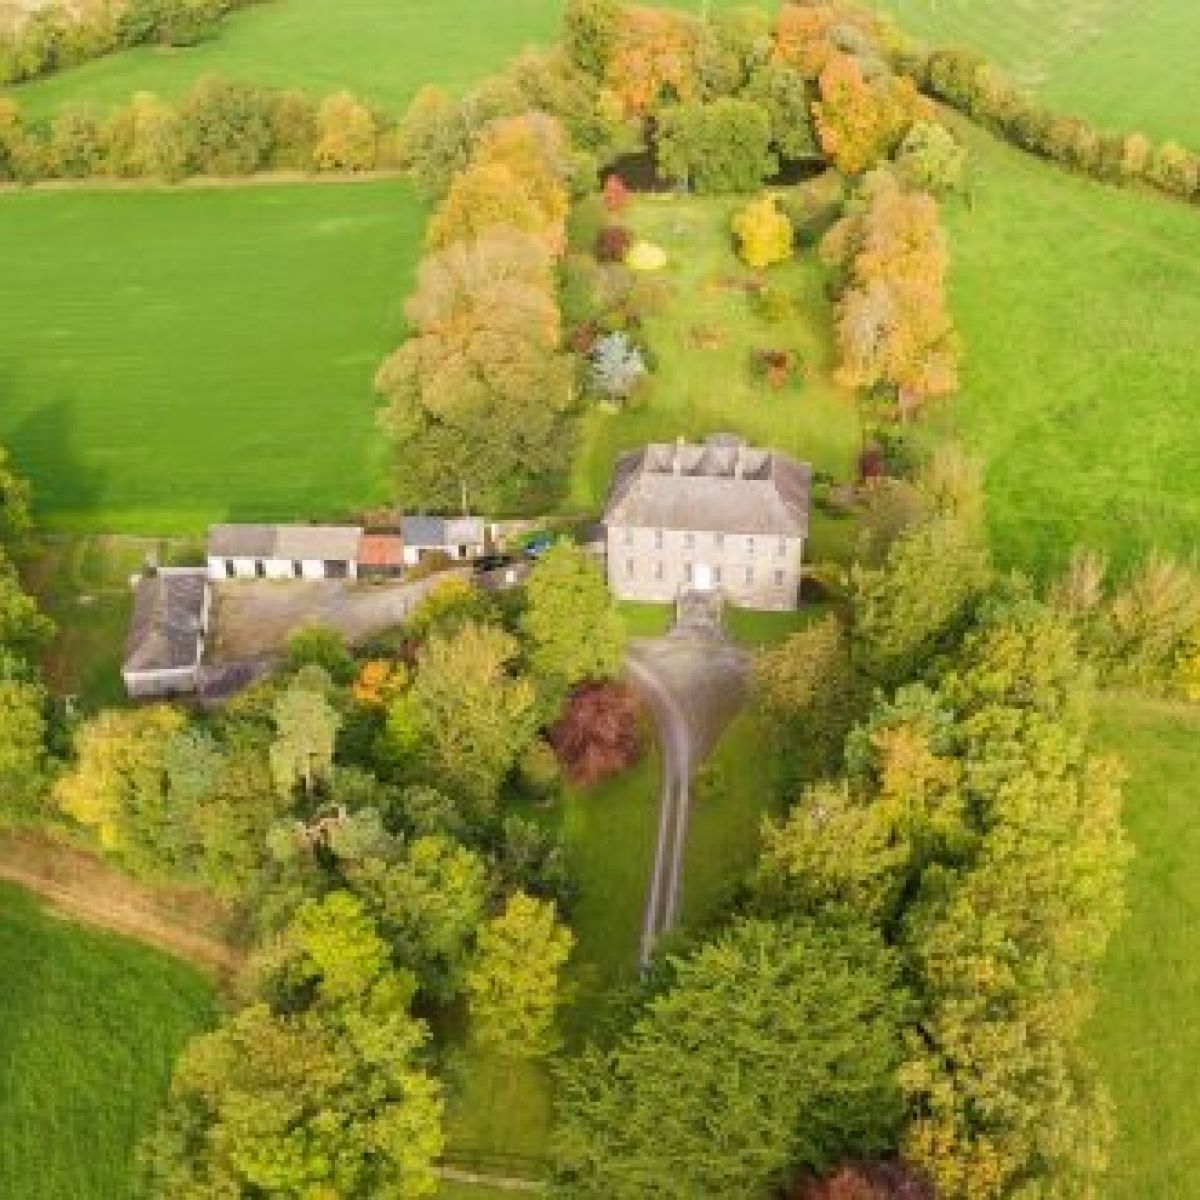 Kilkenny manor with an attic fit for a princess - The Irish Times